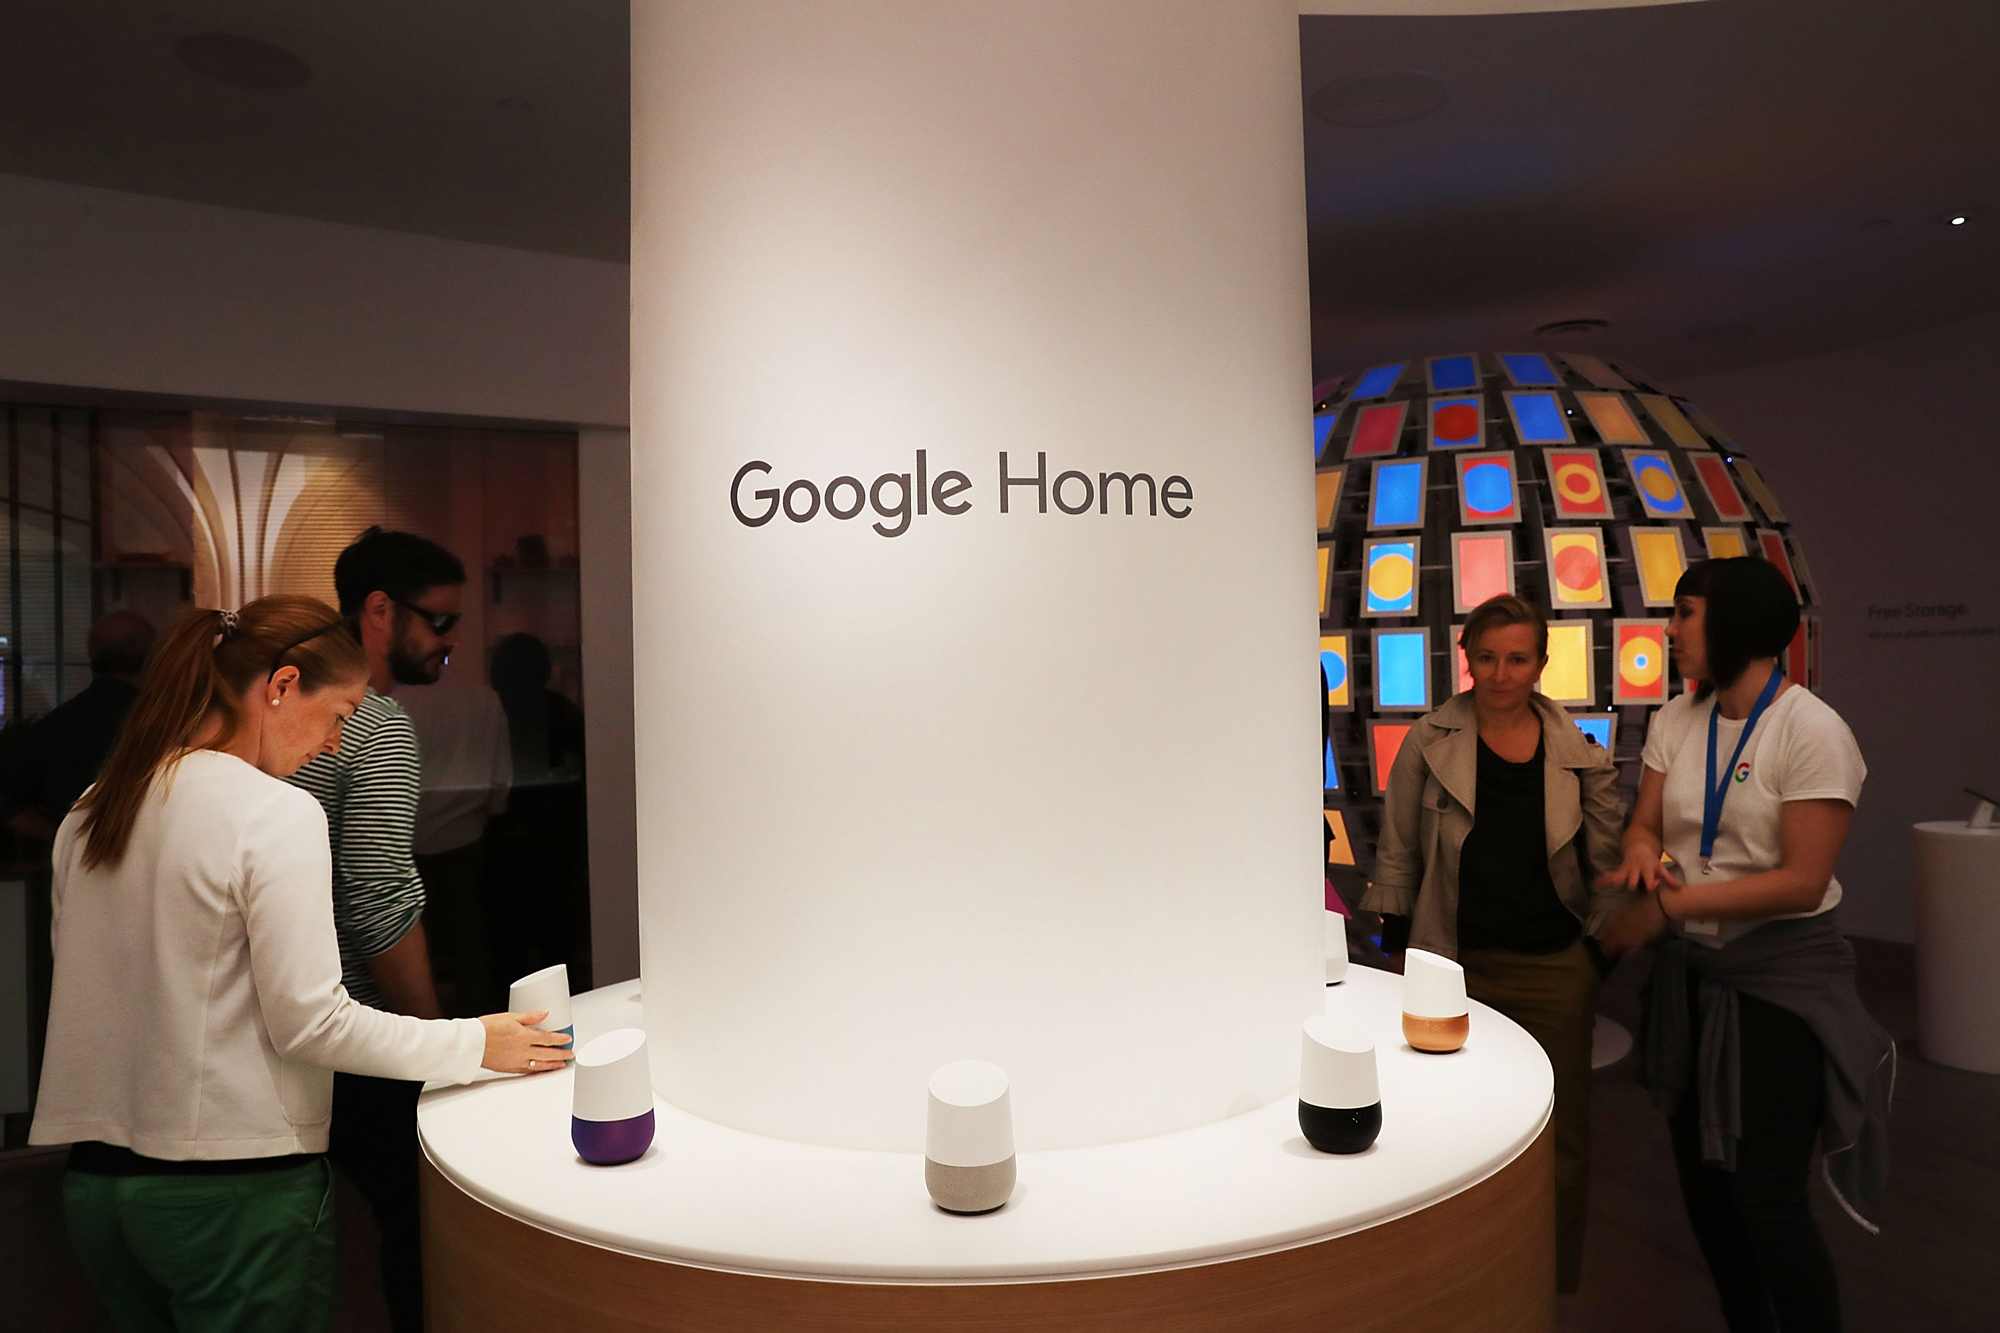 People love smart assistants, like the one built into Google's Home speaker. But they may not be making full use of all the software they can offer.